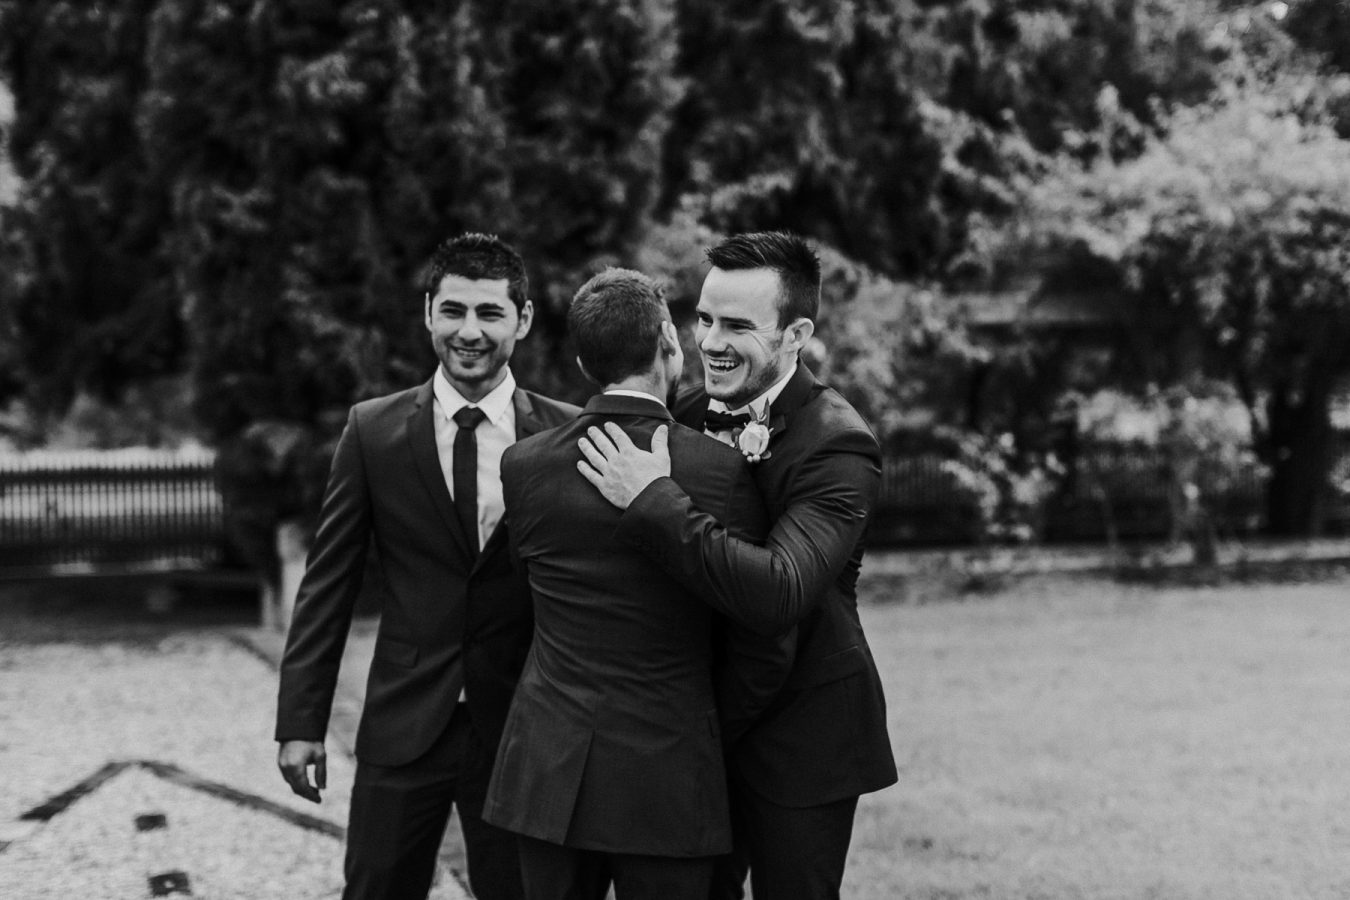 Courtney-Josh-Growwild-Bowral-southernhighlans-Wedding-19